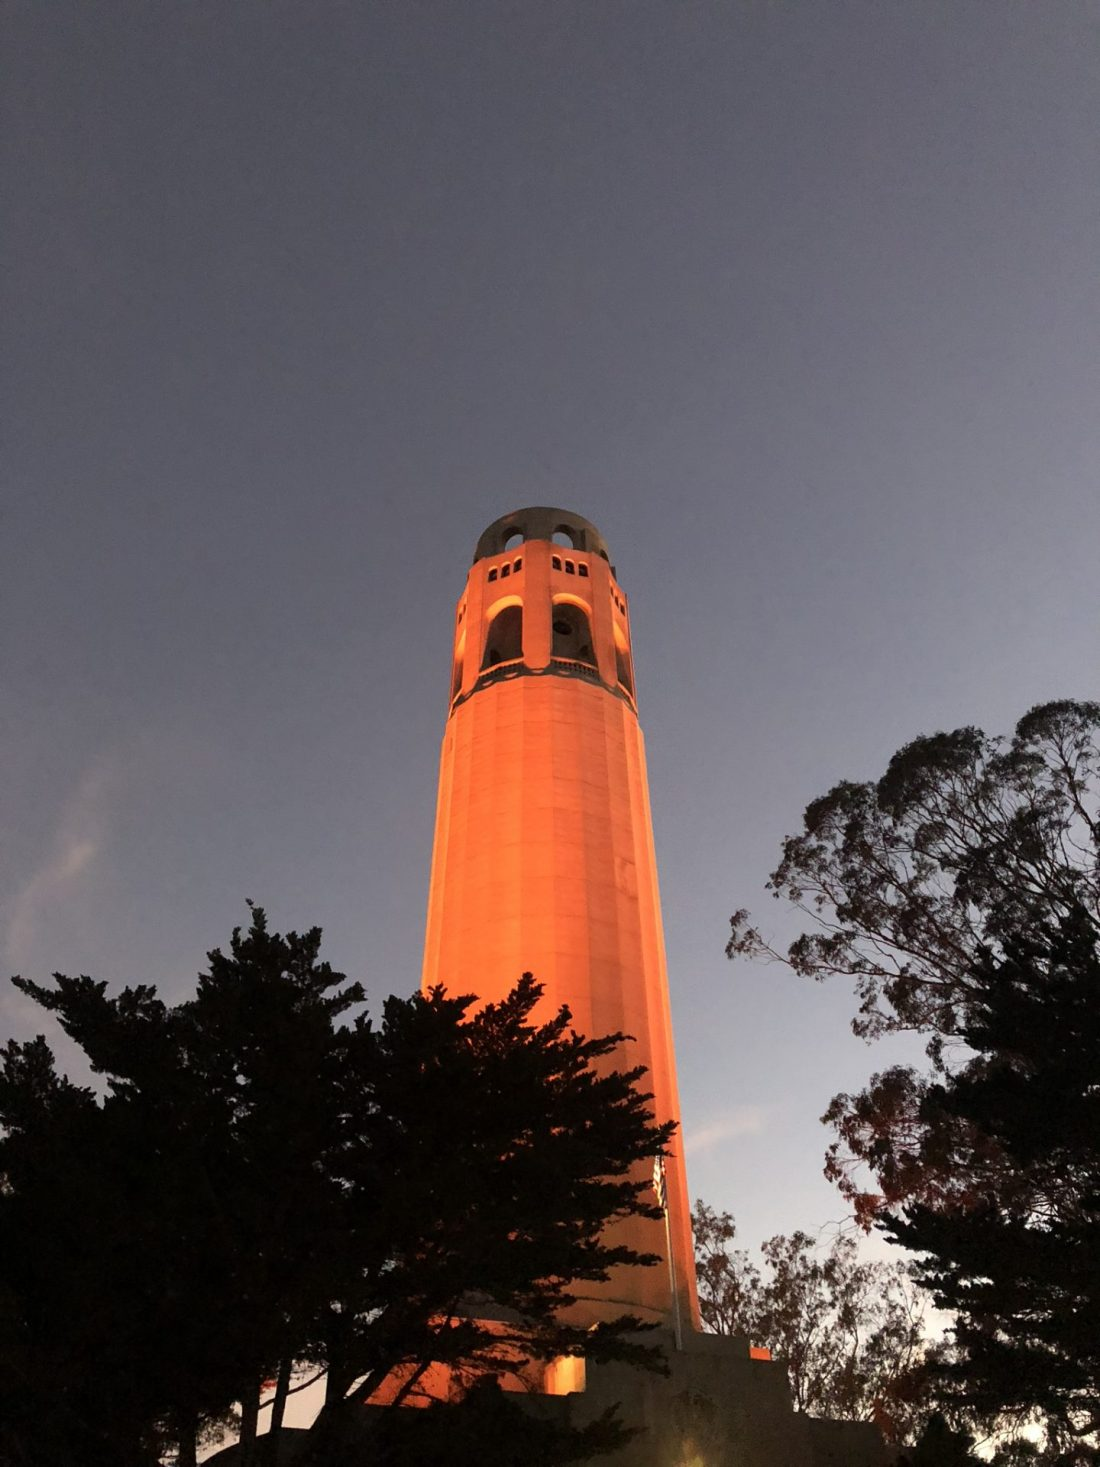 Sunset over the Coit Tower, San Francisco